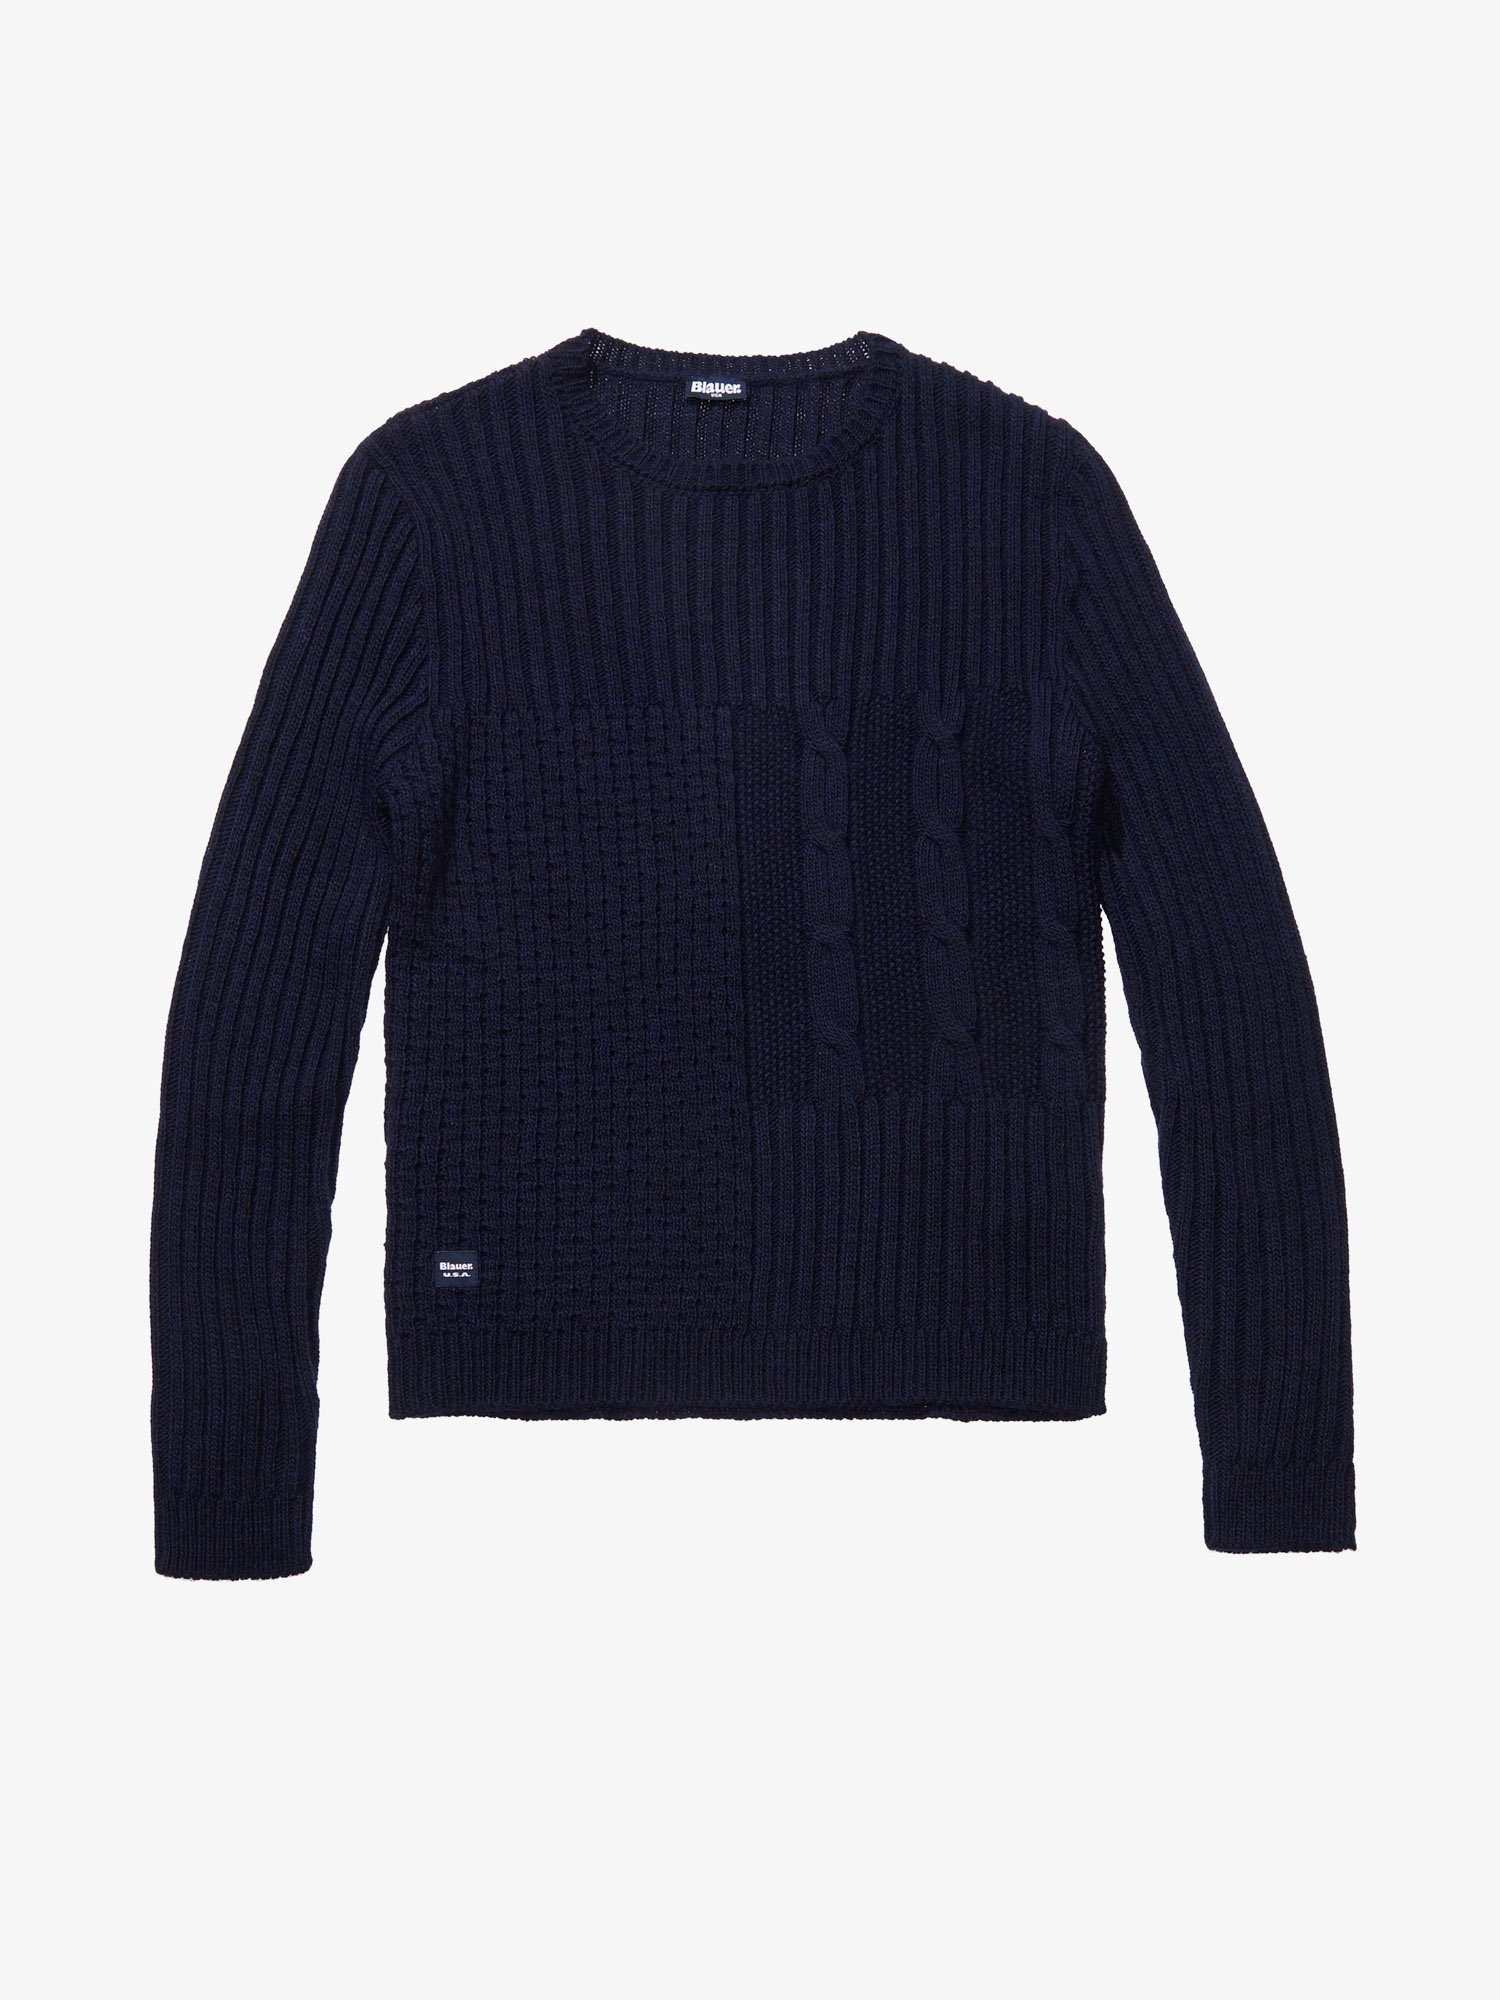 Blauer - CREW NECK WOOL-BLEND SWEATER - blue - Blauer